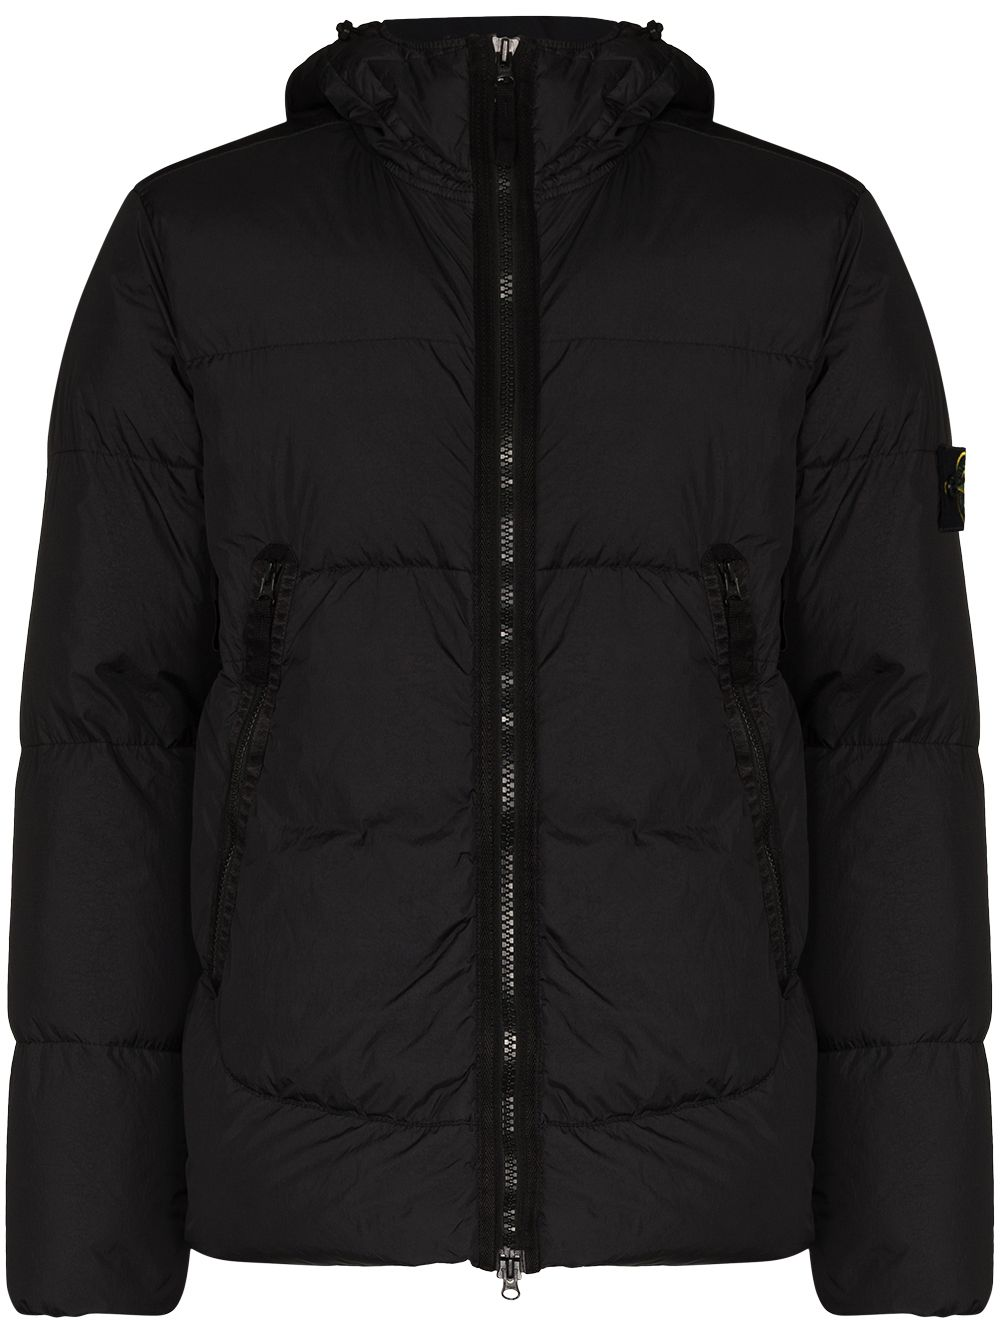 <p class='small-title'>STONE ISLAND</p>Padded Hooded Jacket